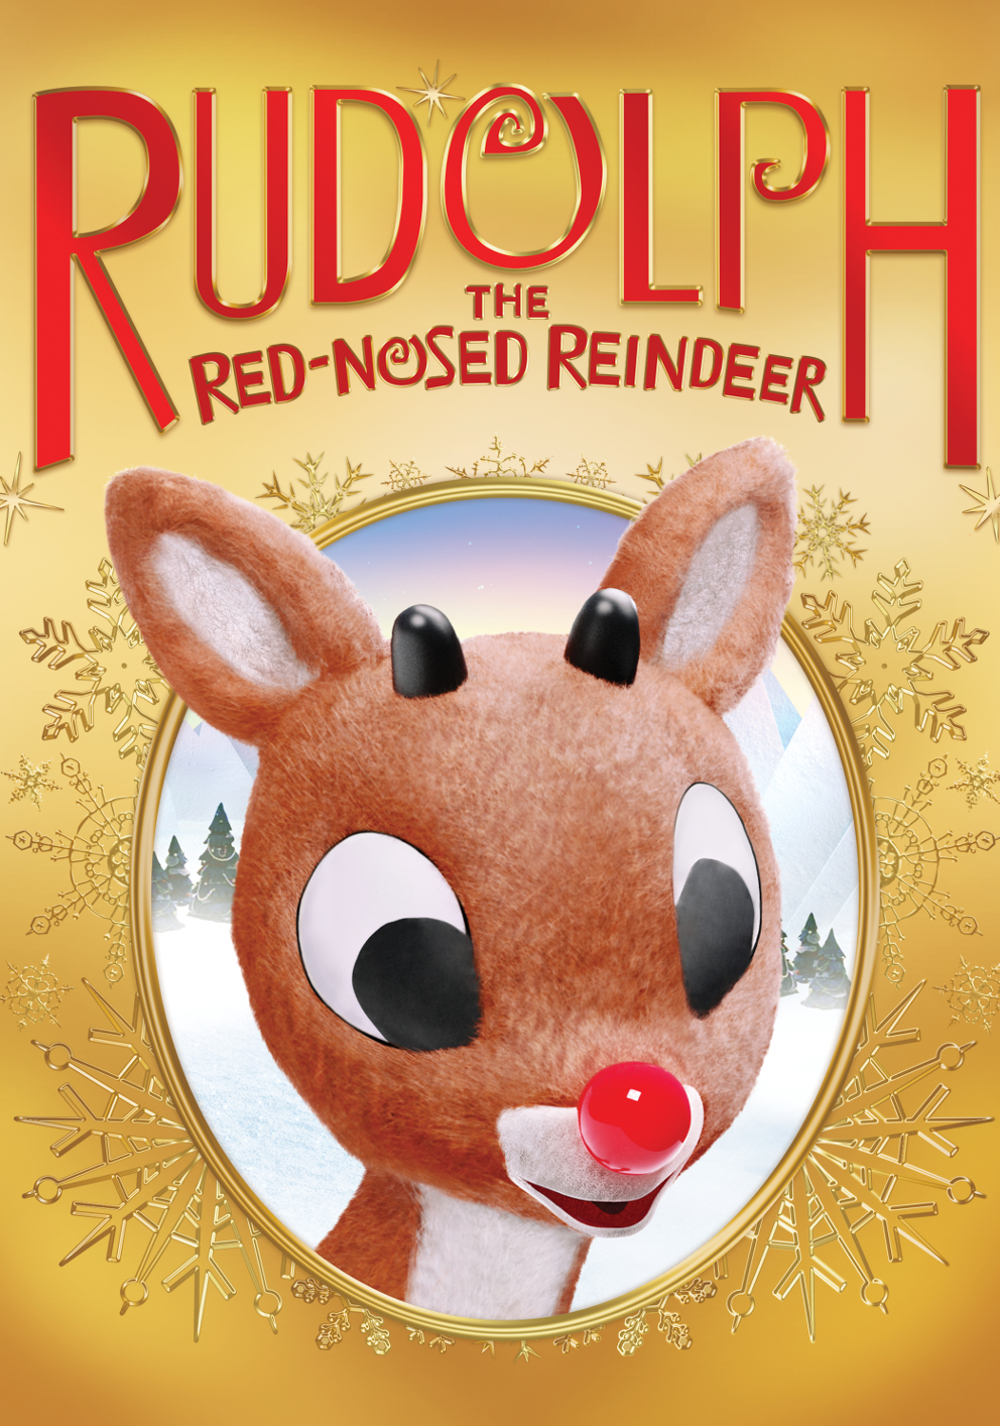 Image result for rudolph the red-nosed reindeer 1964